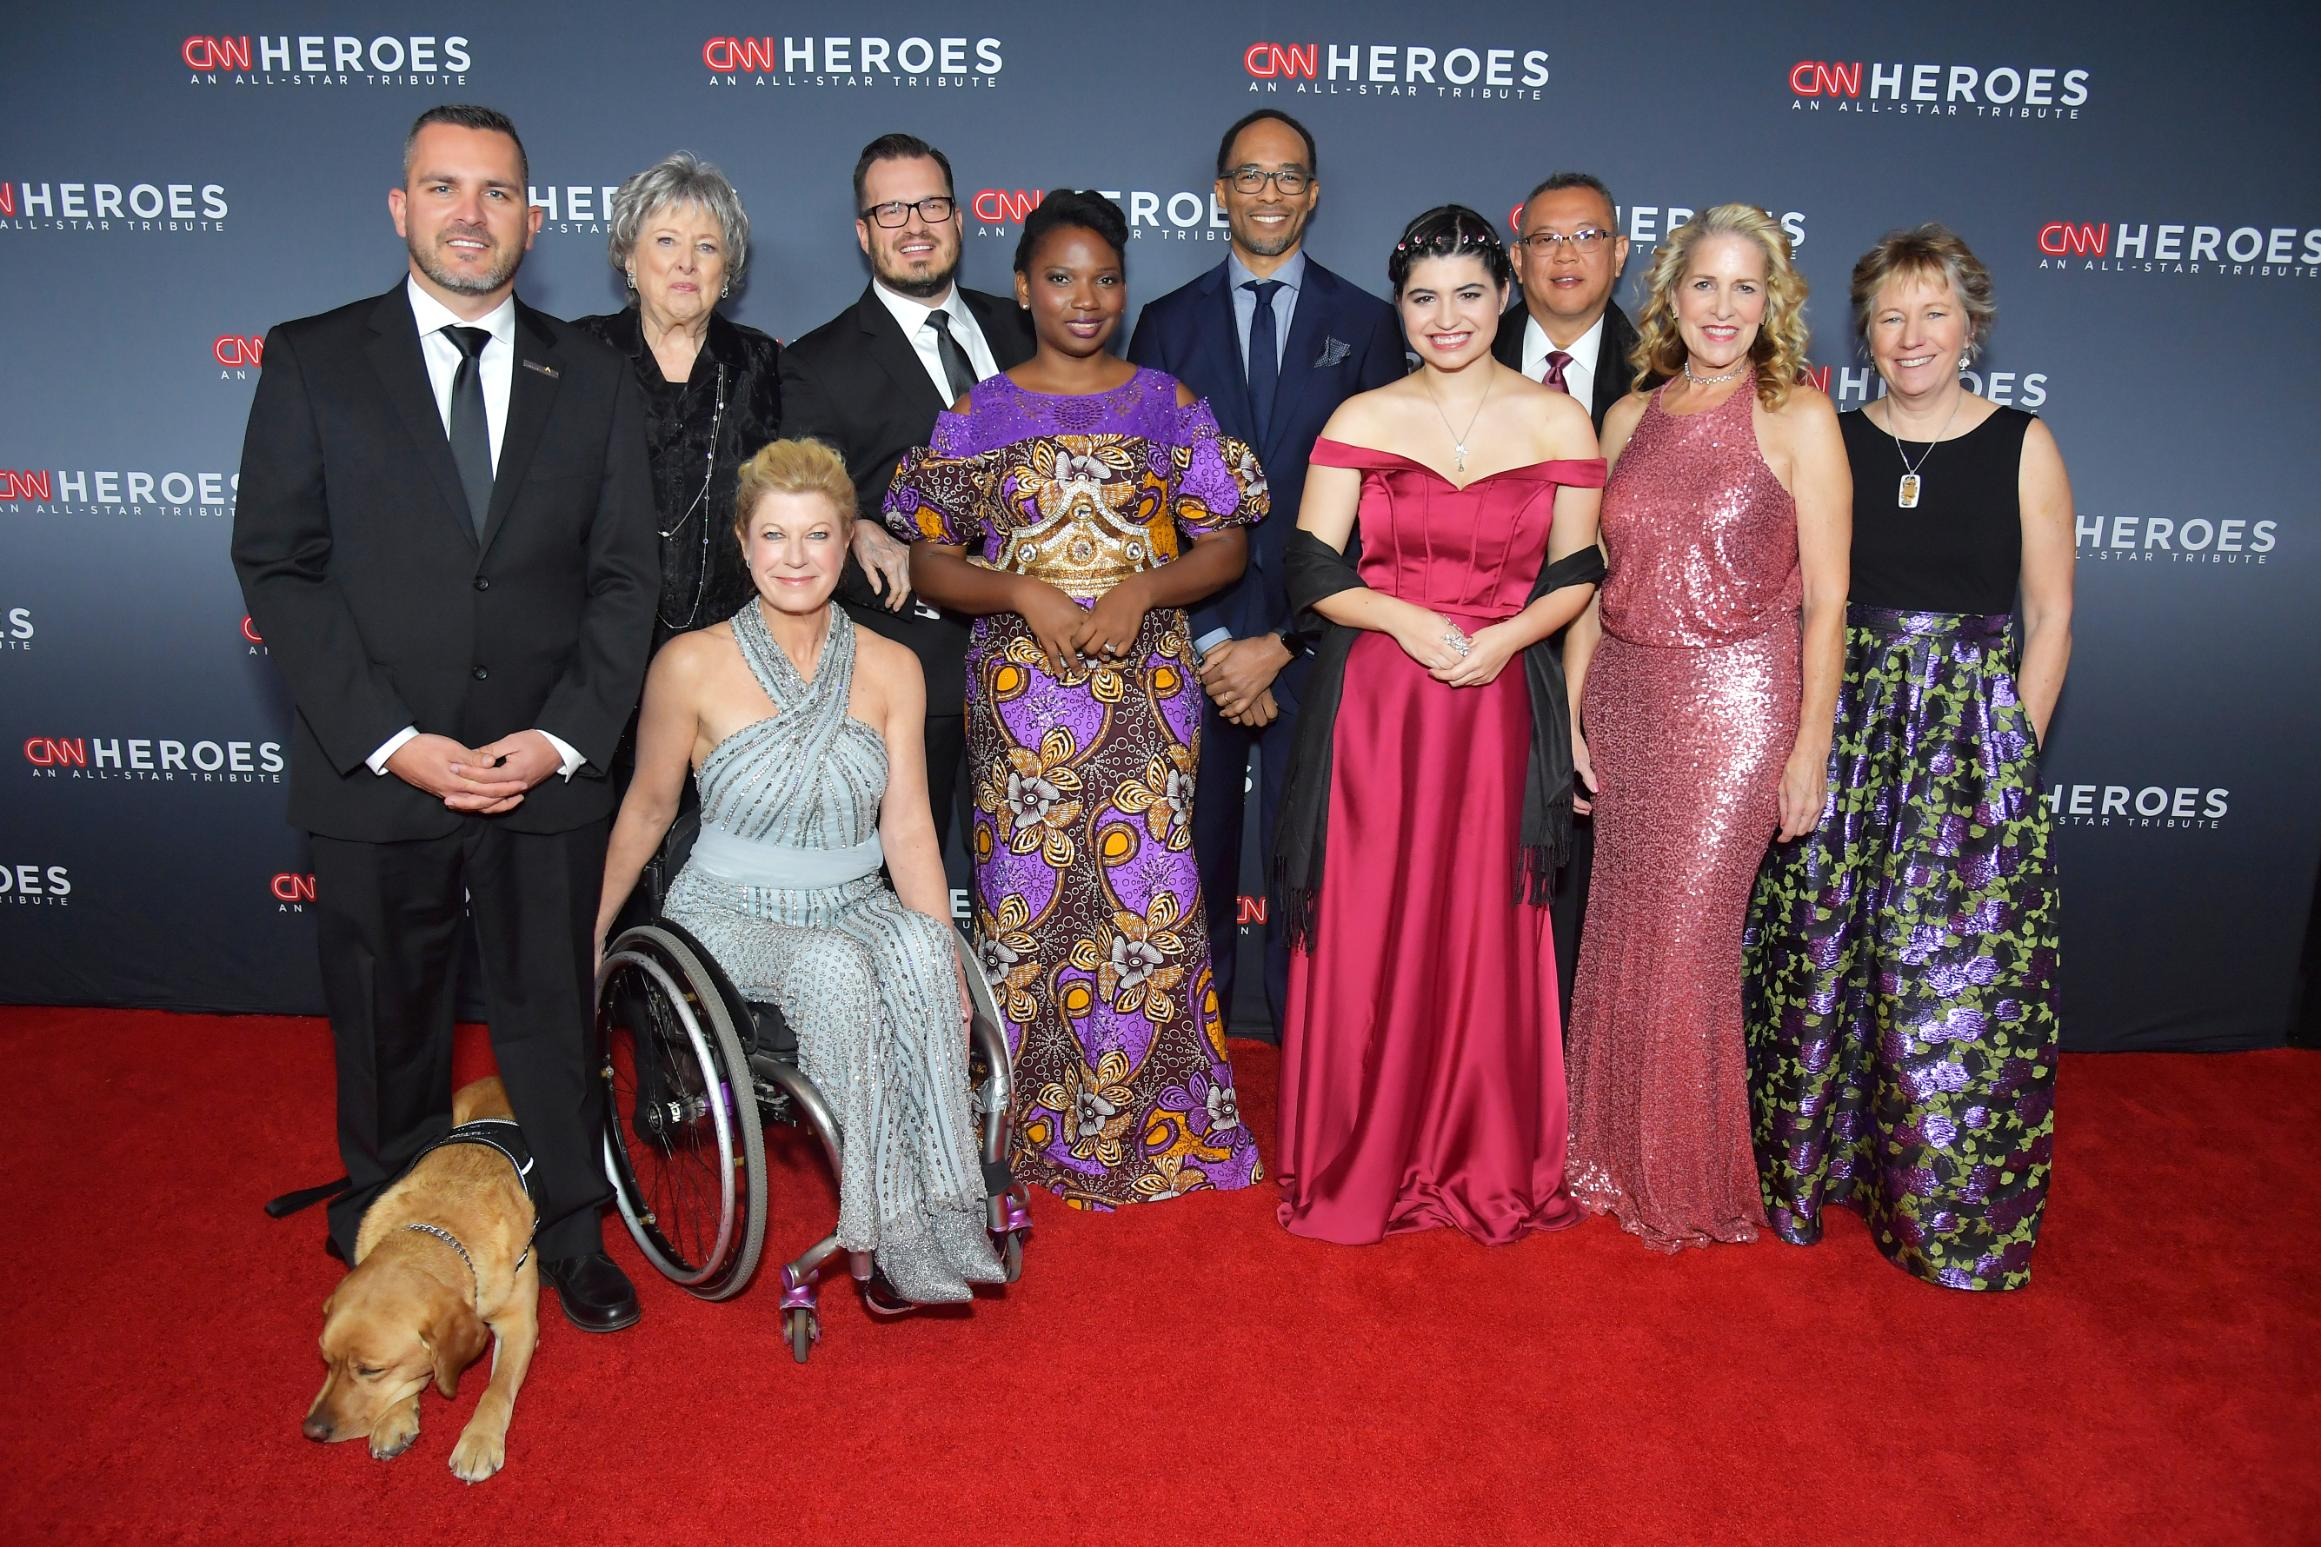 The 2018 Top Ten CNN Heroes on the red carpet